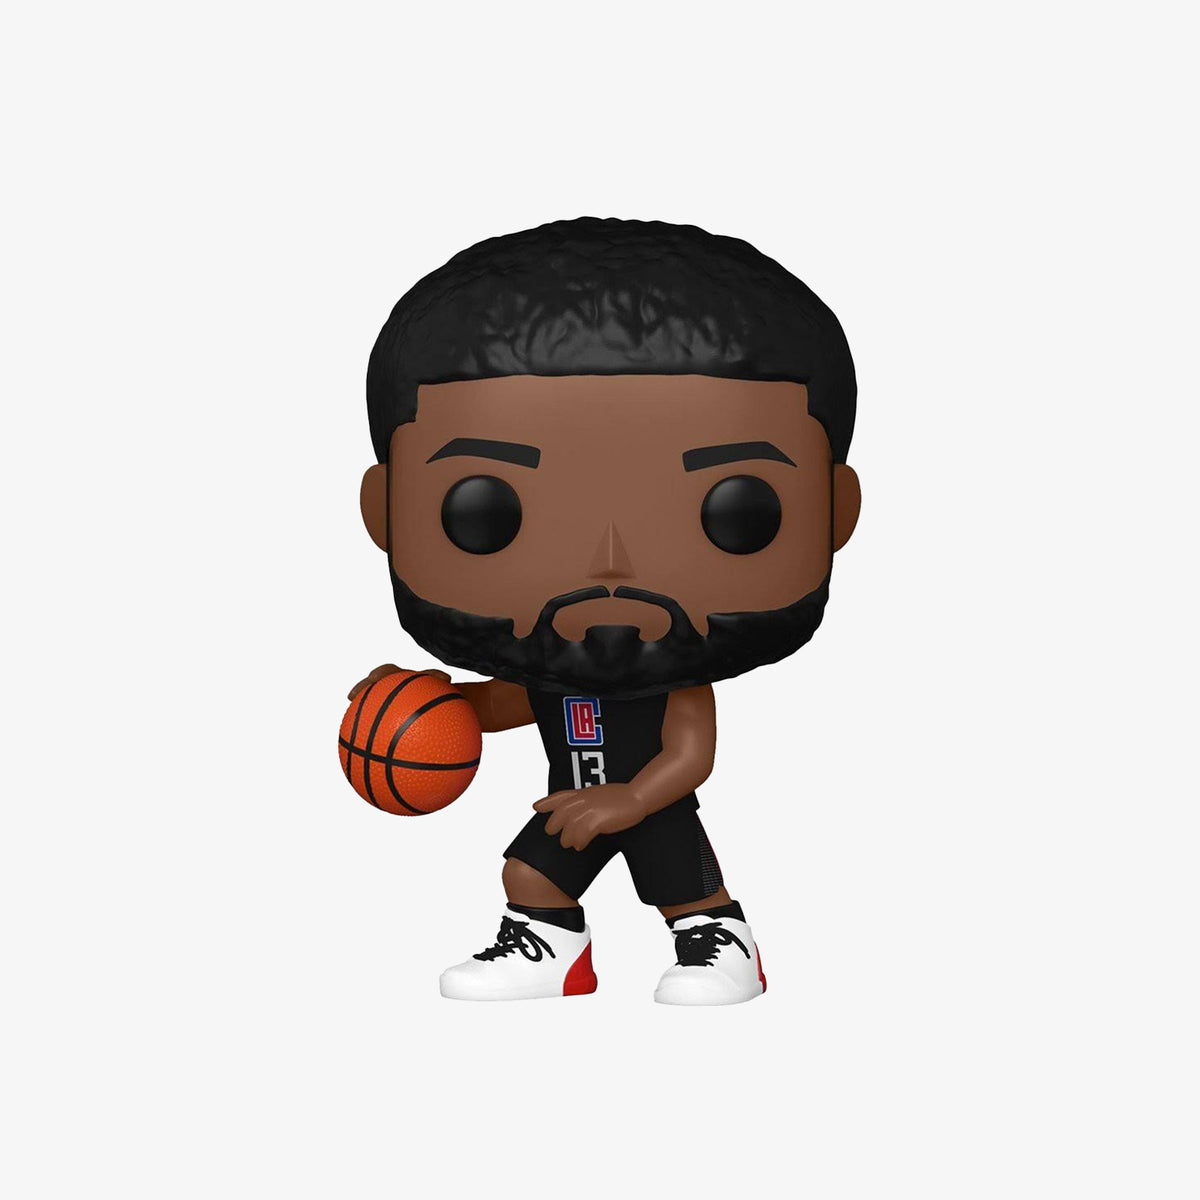 Paul George Los Angeles Clippers NBA Pop Figure - Statement - Black